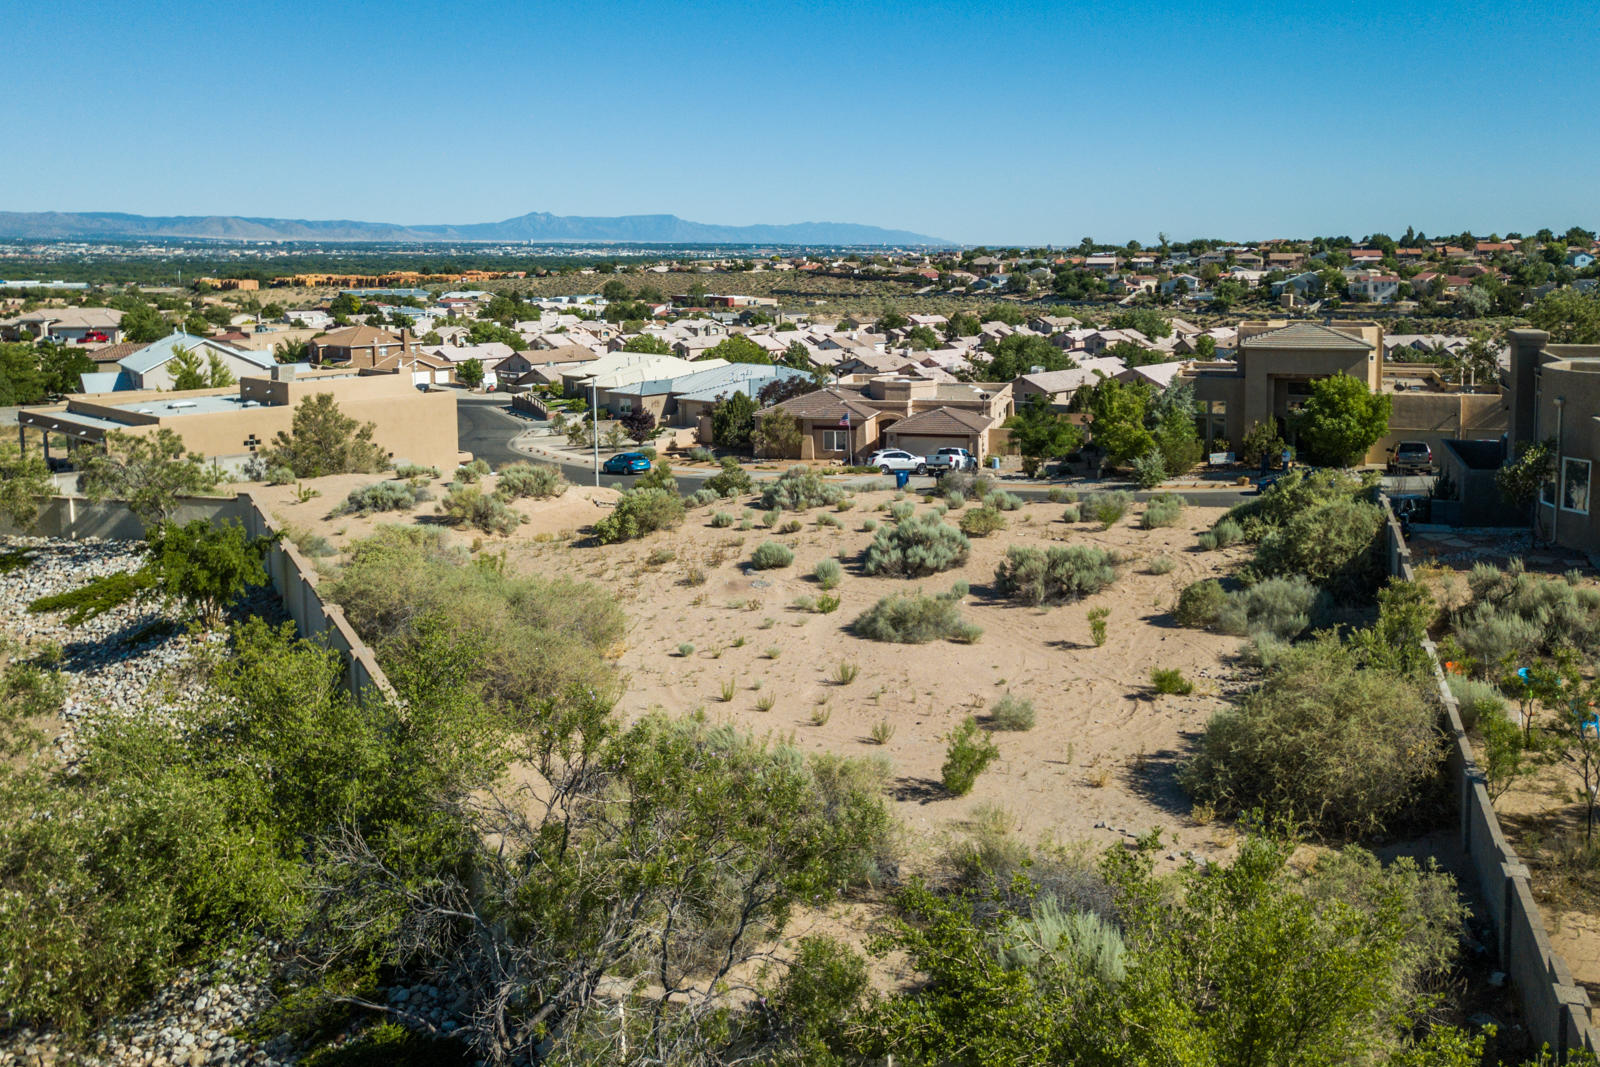 4543 Magic Sky Court NW, Albuquerque, NM 87114 - Albuquerque, NM real estate listing